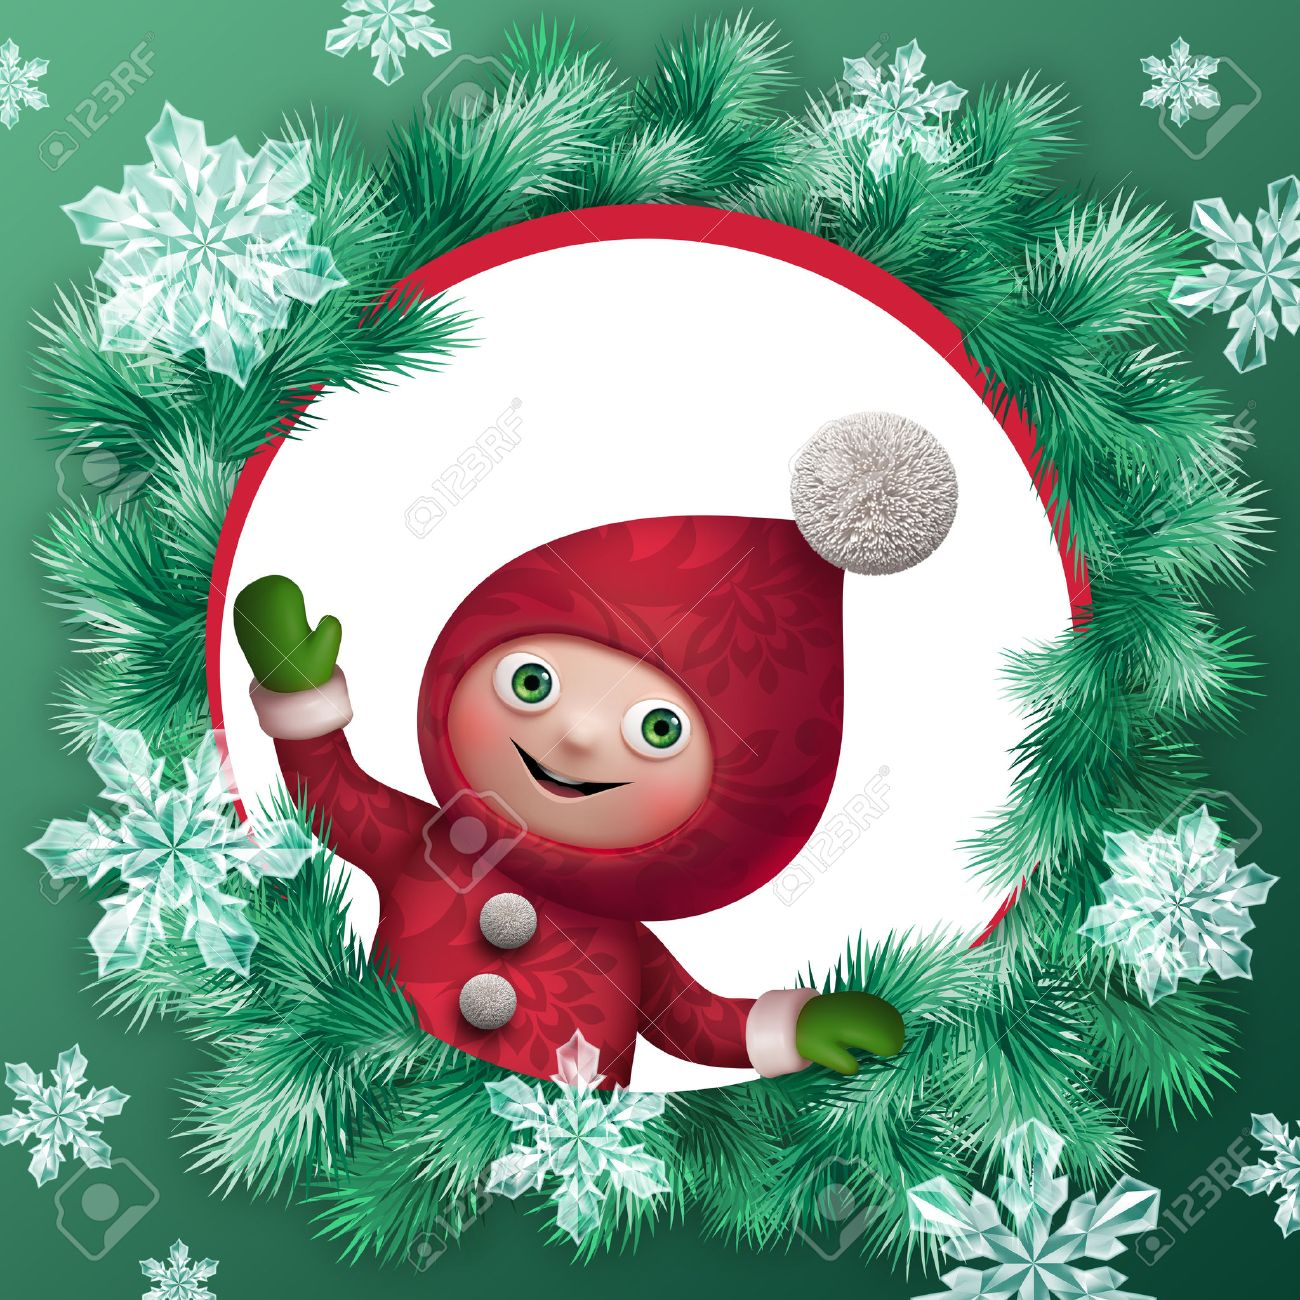 christmas elf cartoon character greeting card clip art Stock Photo - 23981861